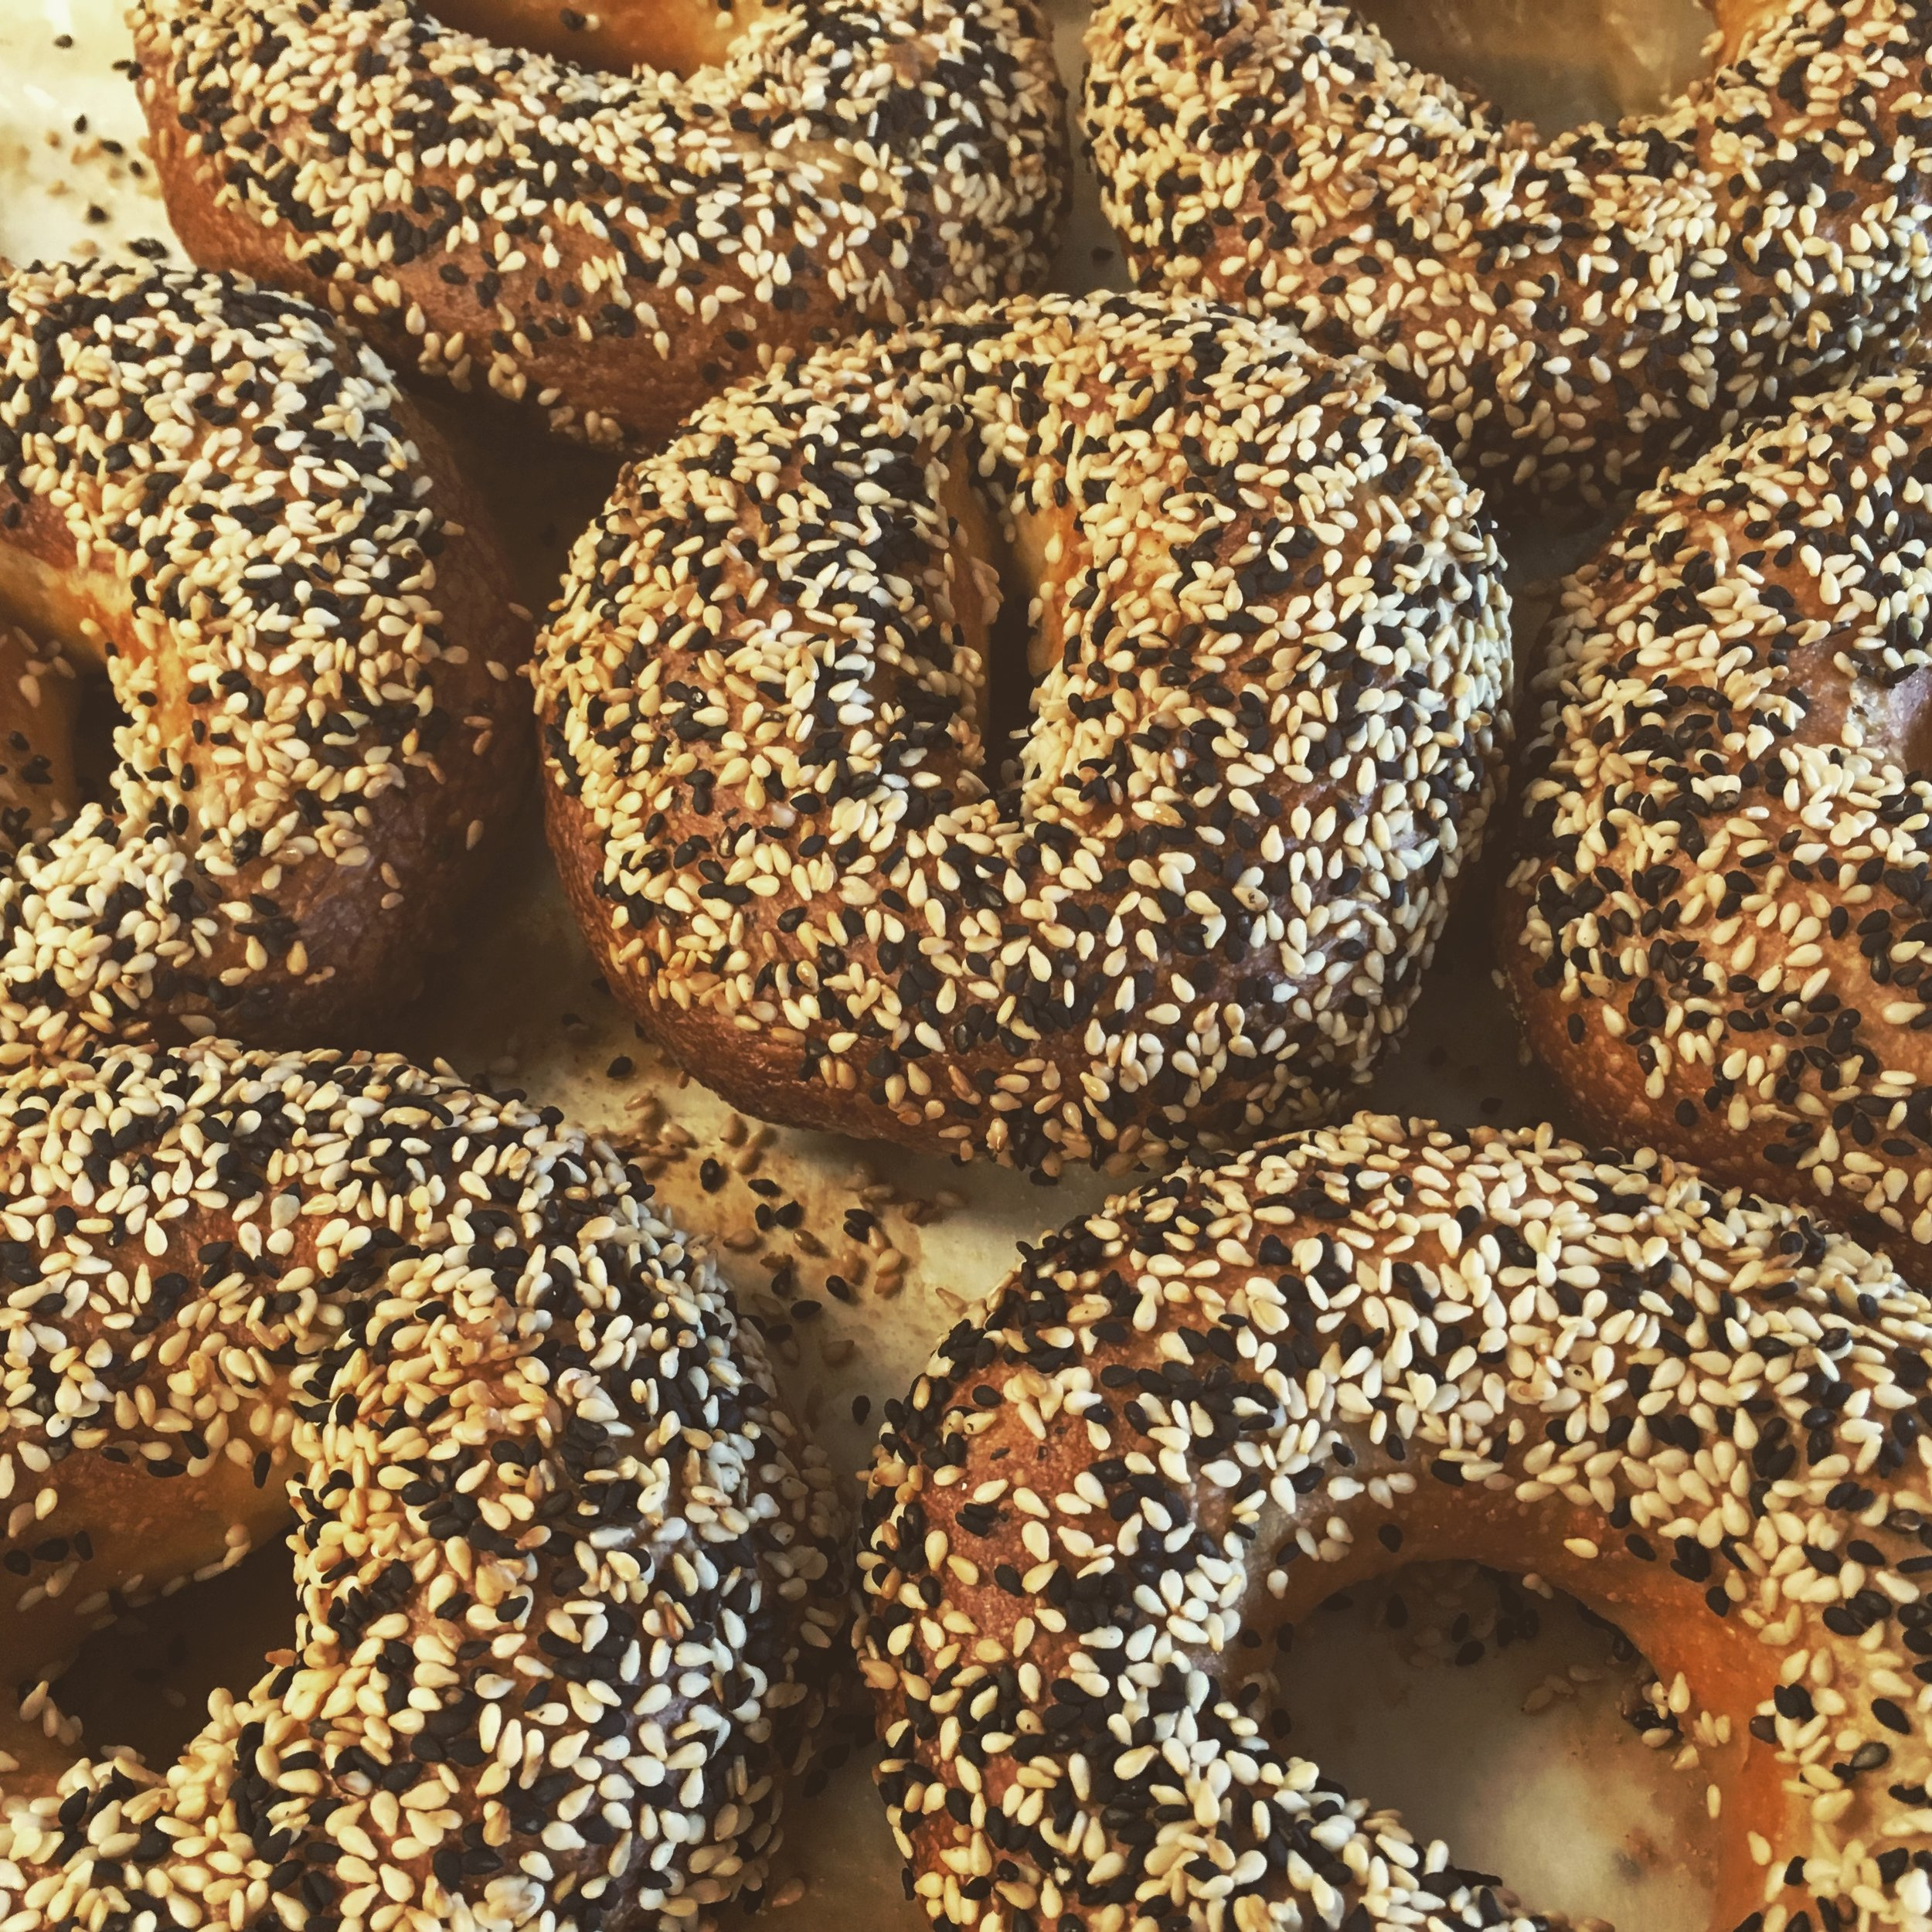 - Delicatesse is deli, cafe & eatery based in Shelburne Falls, MA. We offer hand-rolled bagels, and fresh homemade foods inspired by NYC delicatessen cuisine and other counter-style food cultures. Our offerings change with the seasons, and feature local produce, meats and dairy.